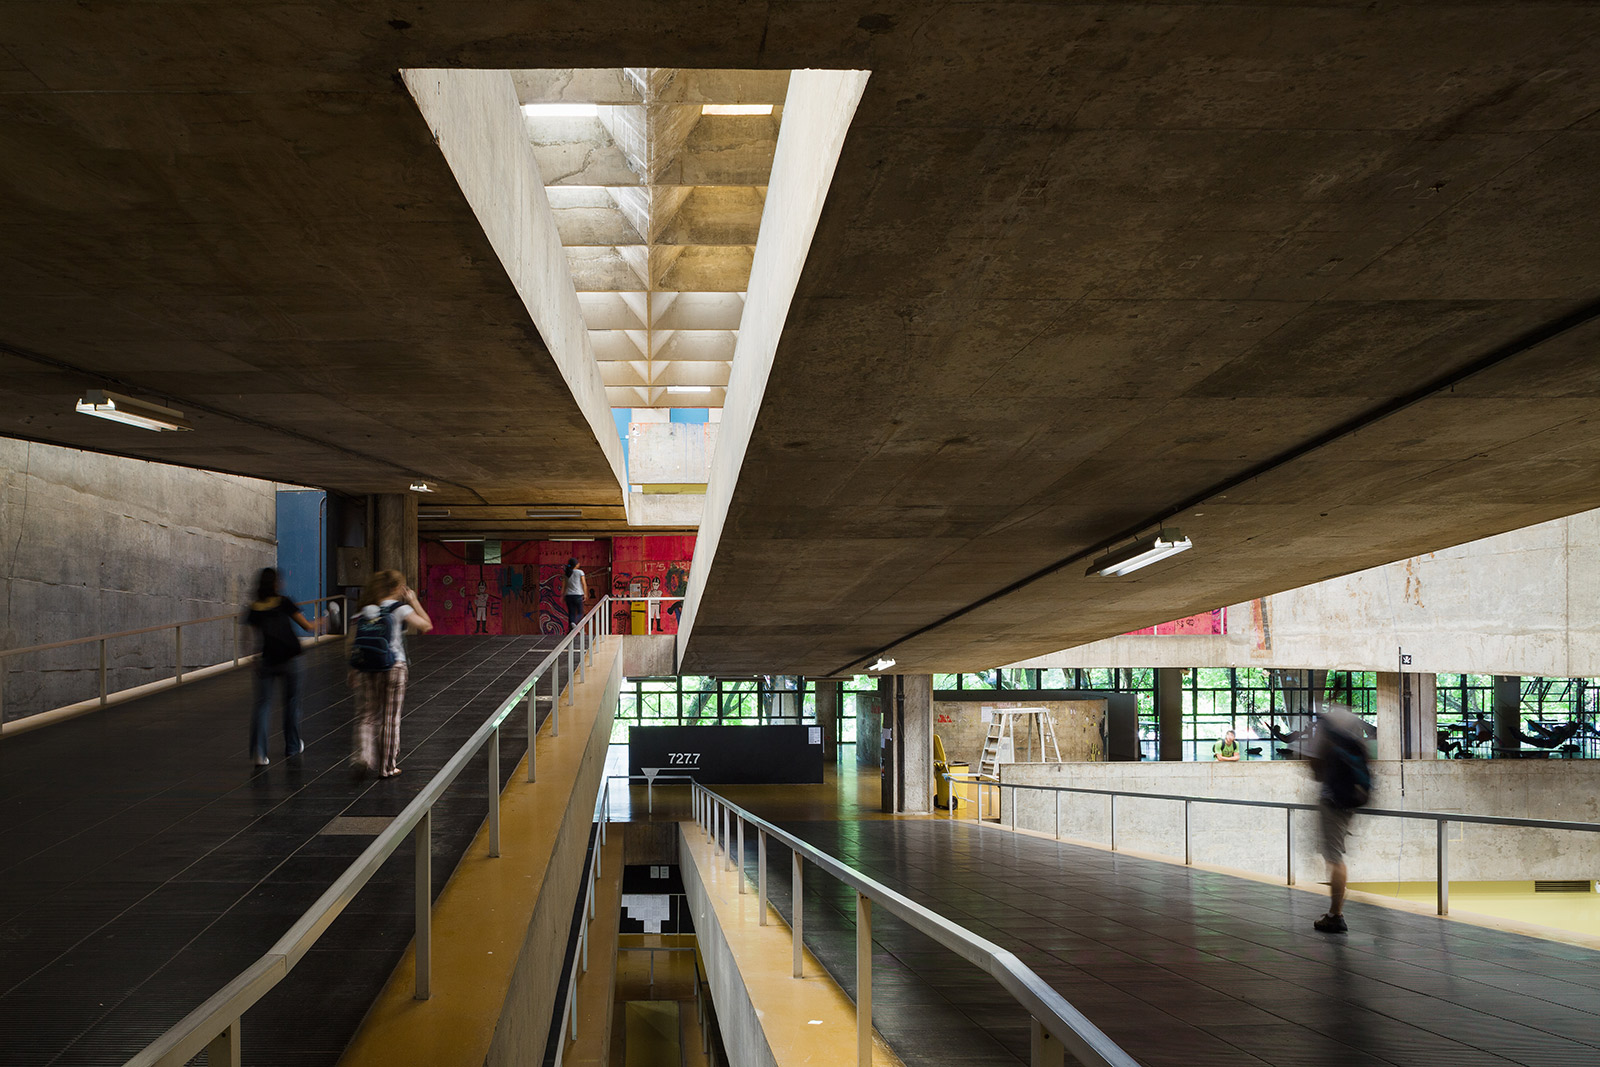 Interior of concrete building with two parallel ramps leading to different levels. People walking on the ramps are blurred.